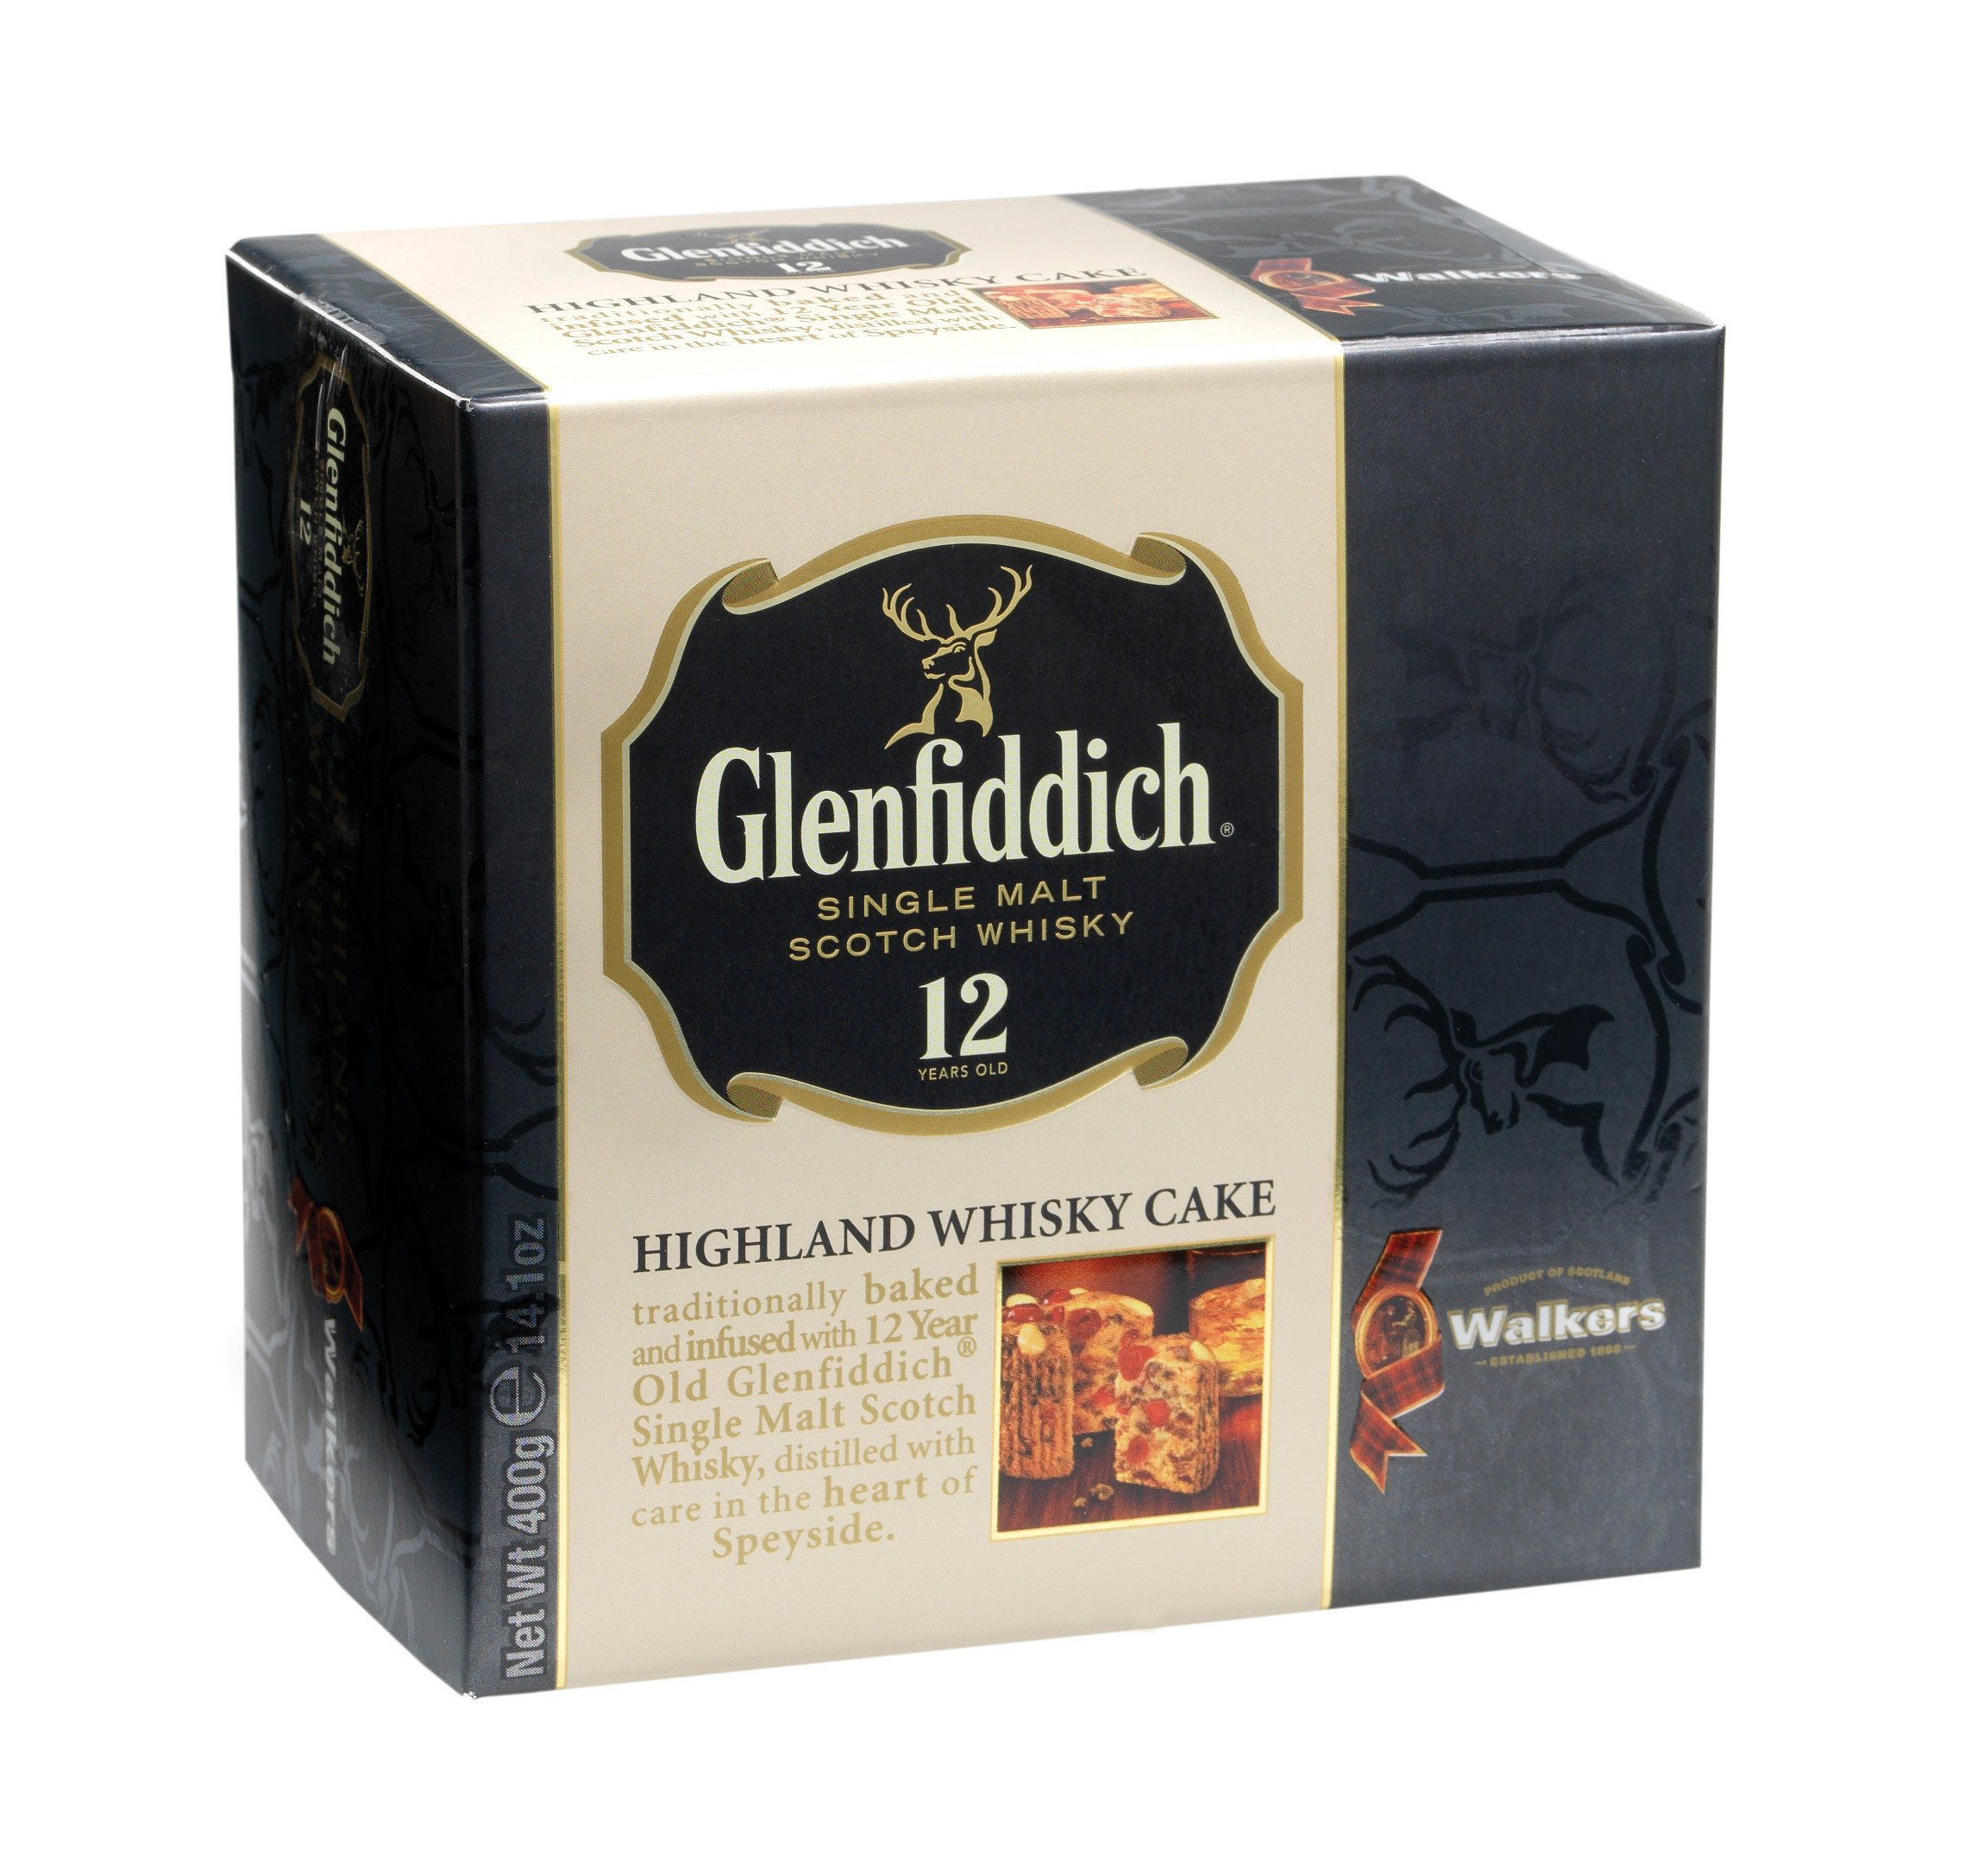 Walkers Shortbread Glenfiddich Highland Whisky Cake, 14.1 Ounce Box Traditional Scottish Fruit Cake with Glenfiddich